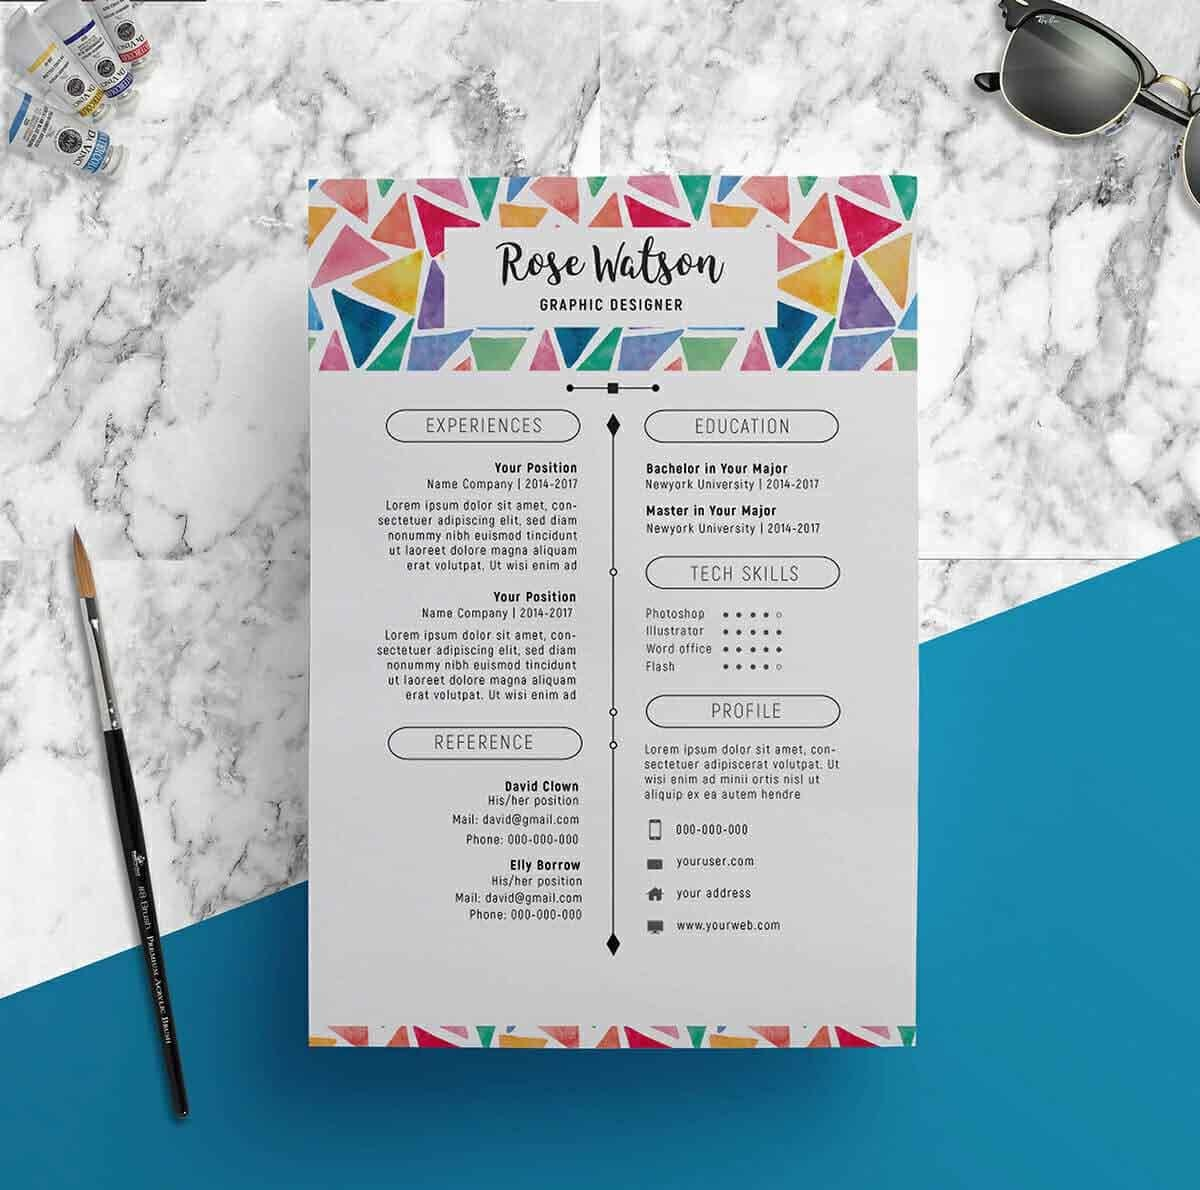 artistic resume with creative header